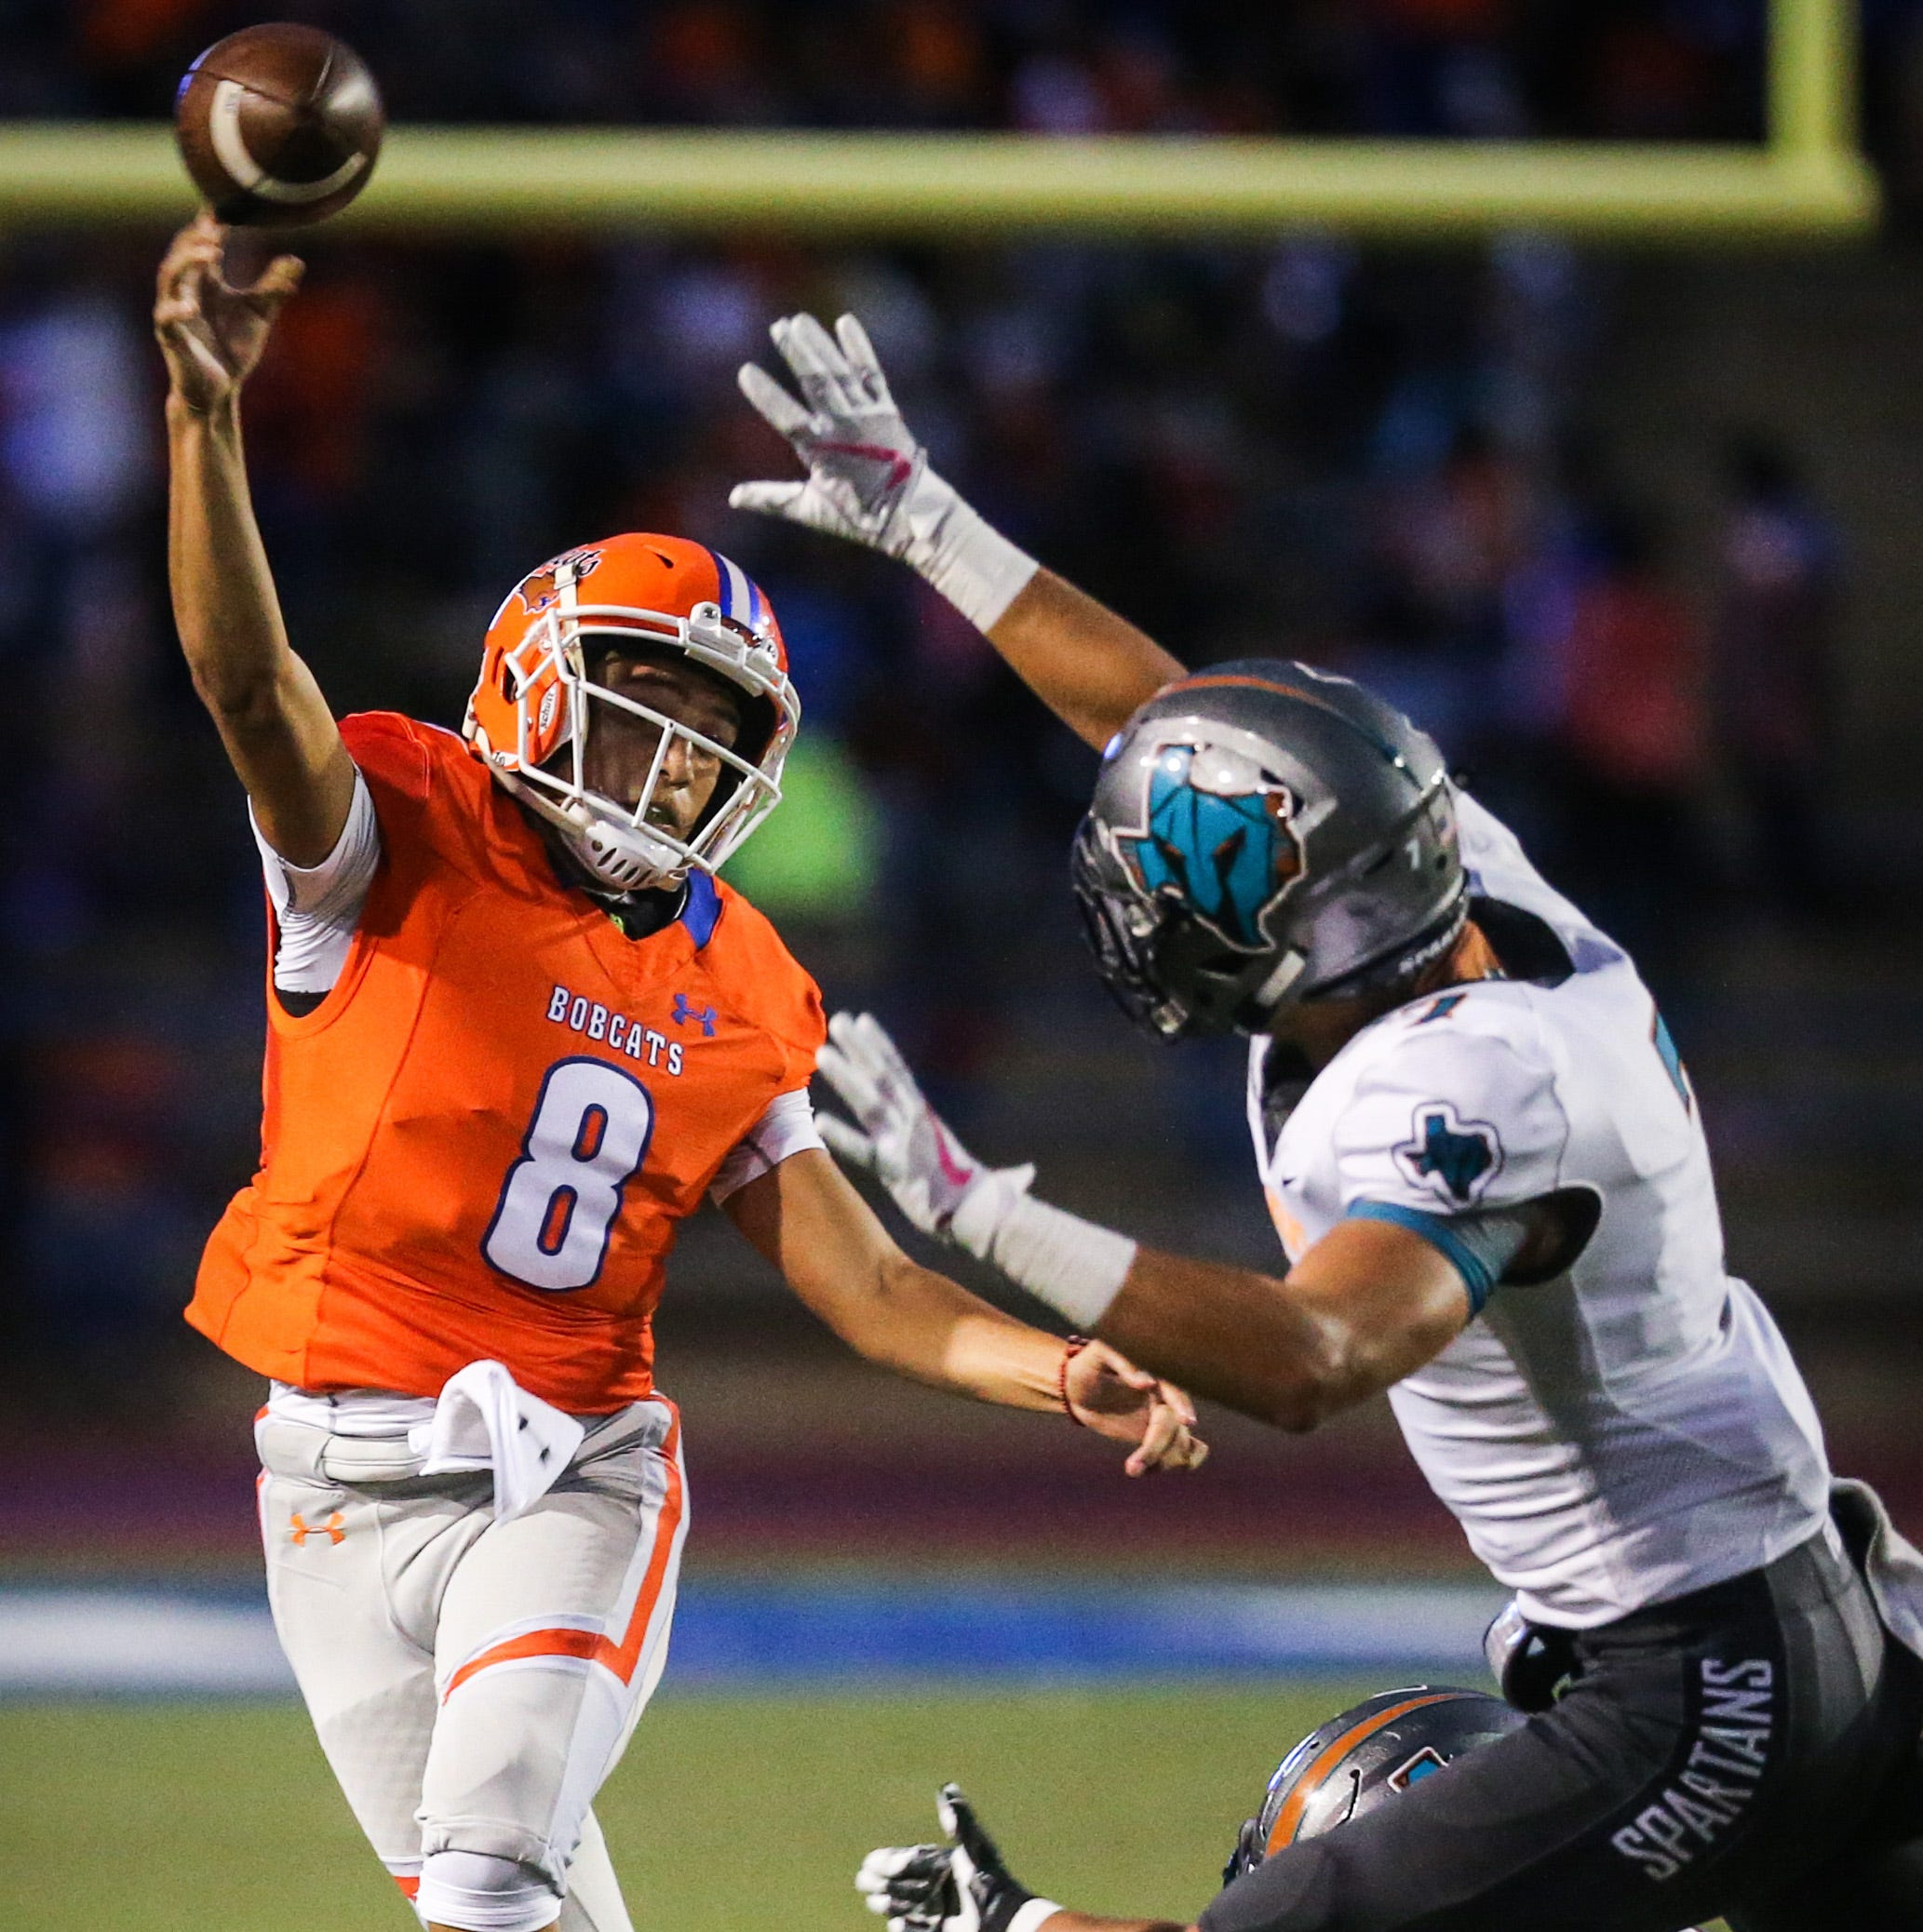 Brown leads Bobcats to homecoming win over Pebble Hills